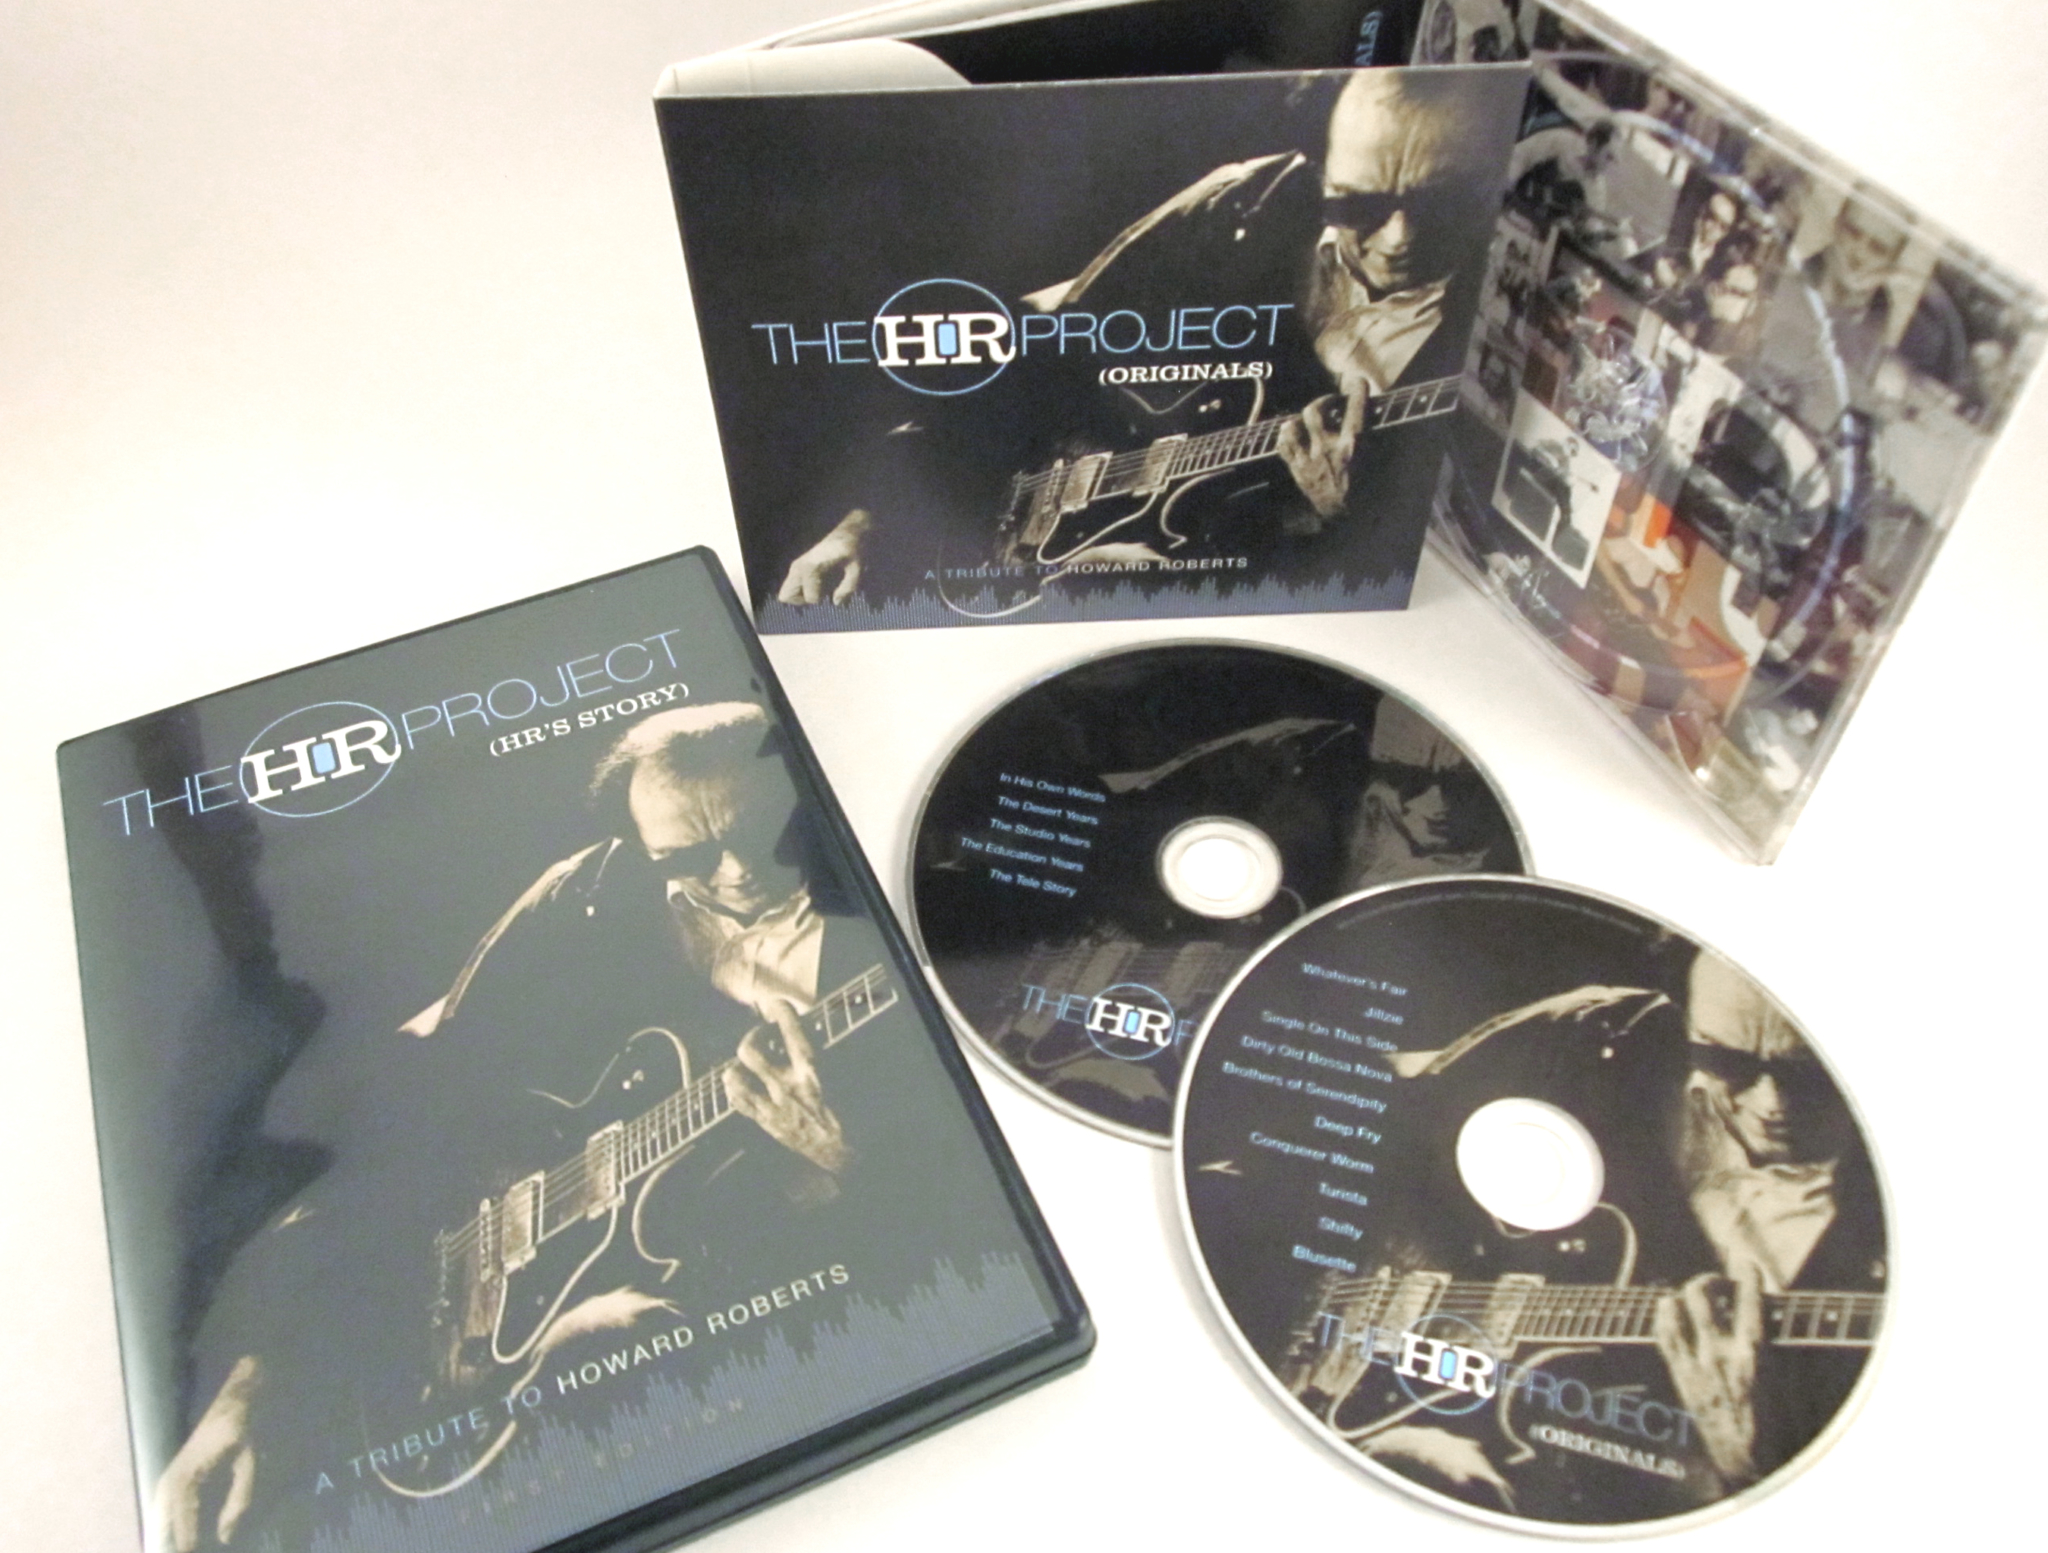 The HR Project CD & DVD Package